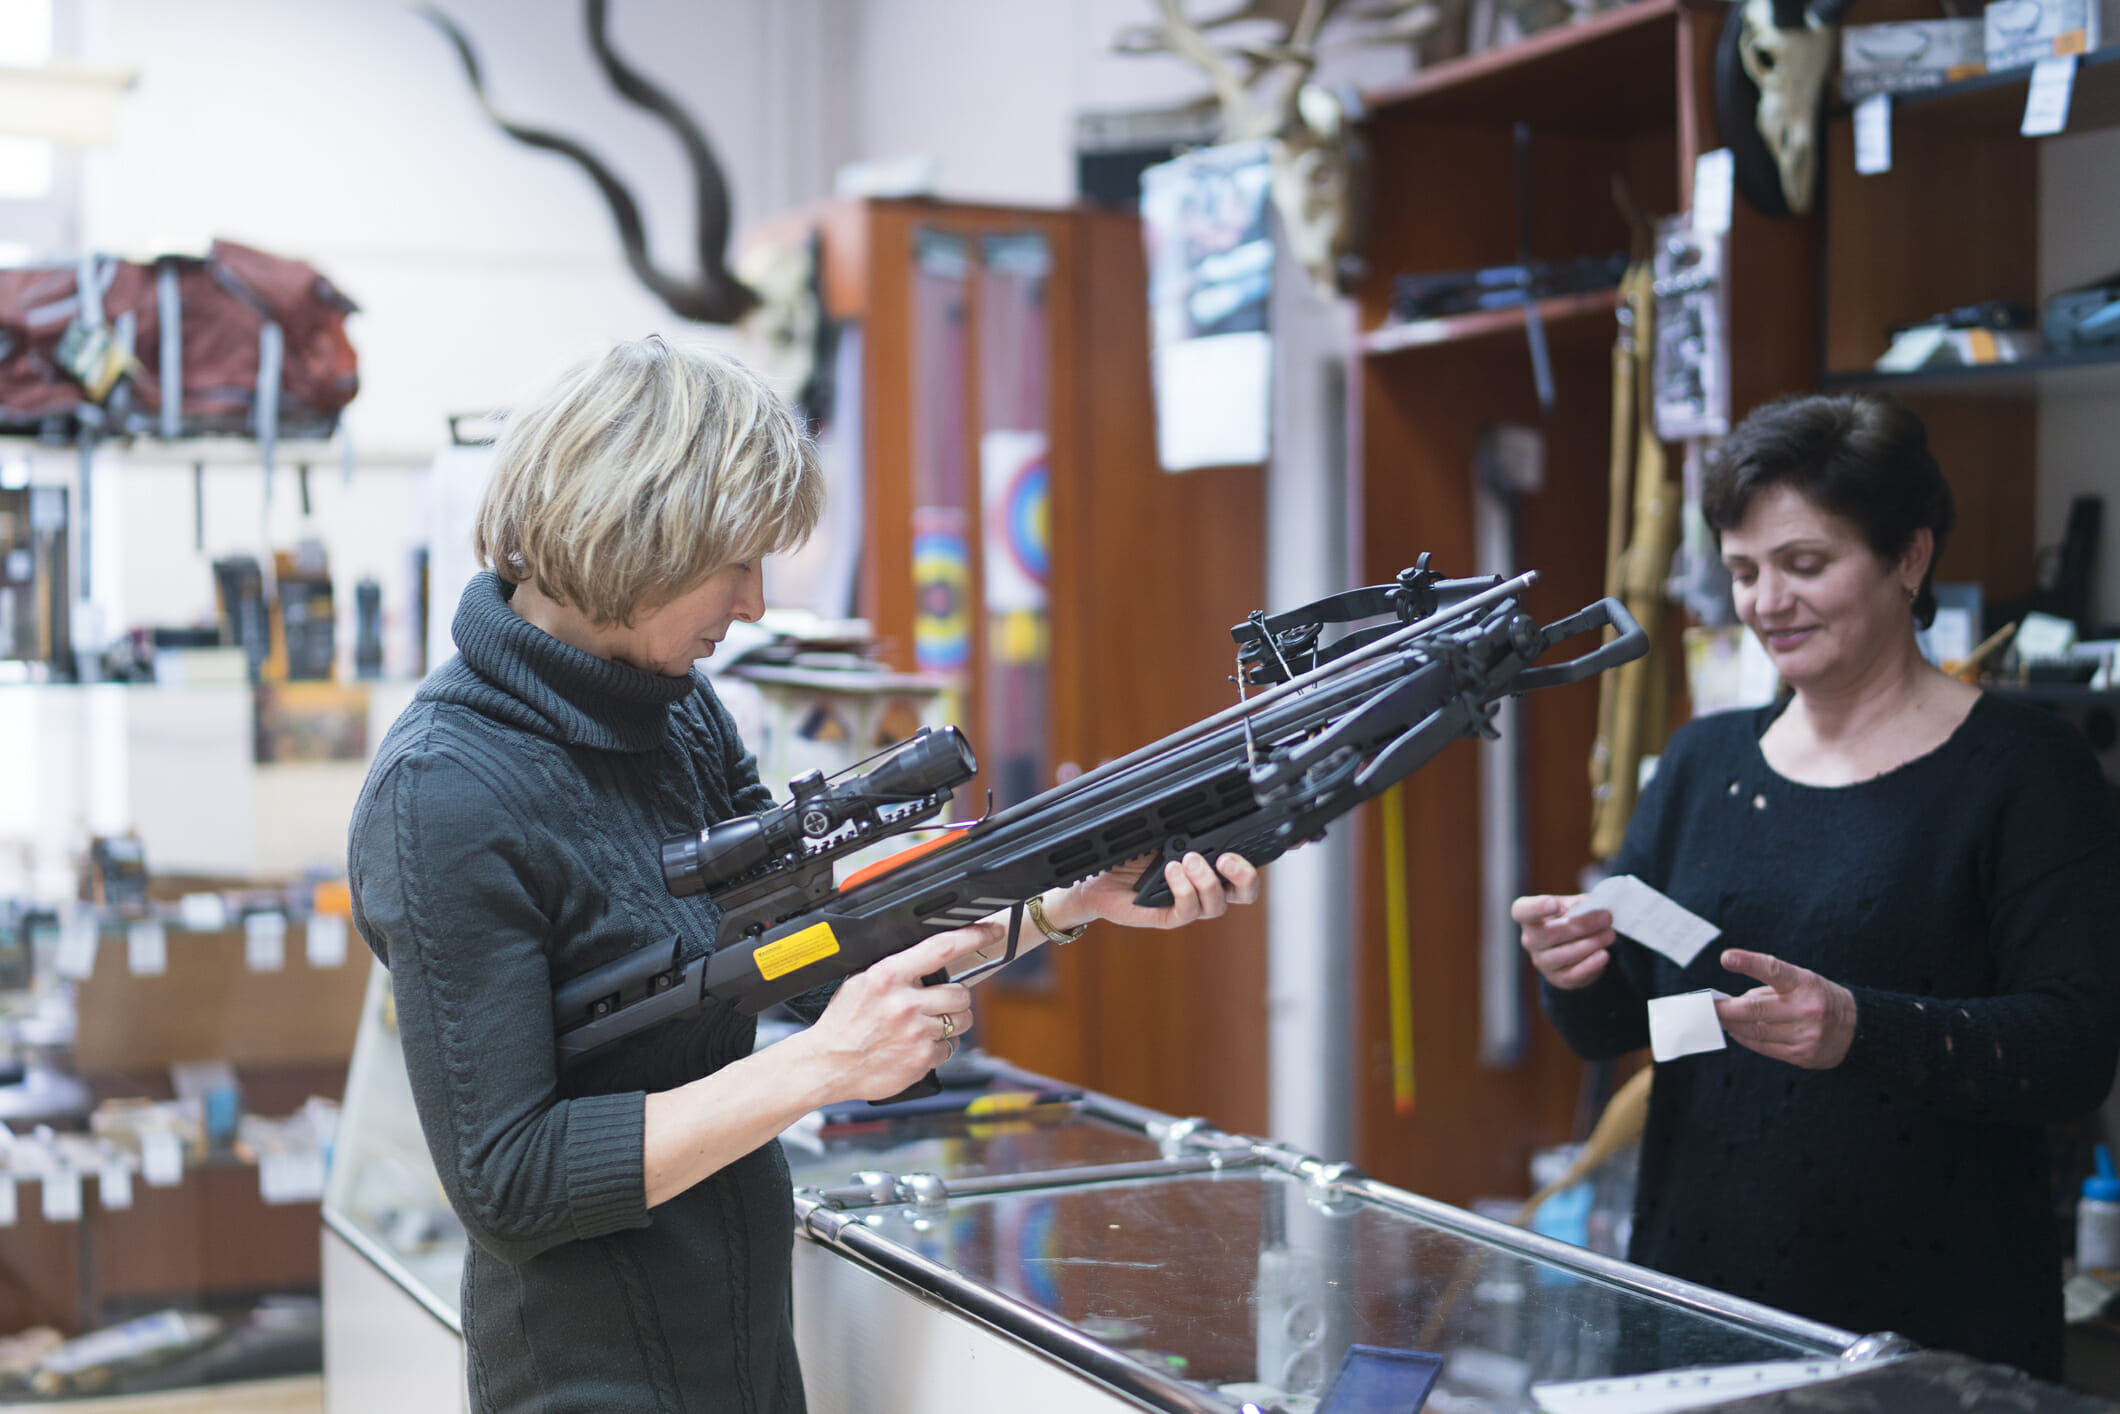 The attractive blonde mature, 50-years-old woman examining the crossbow in the small hunting store, with assistance of the woman - salespersone. Kaliningrad, Russia, Eastern Europe.